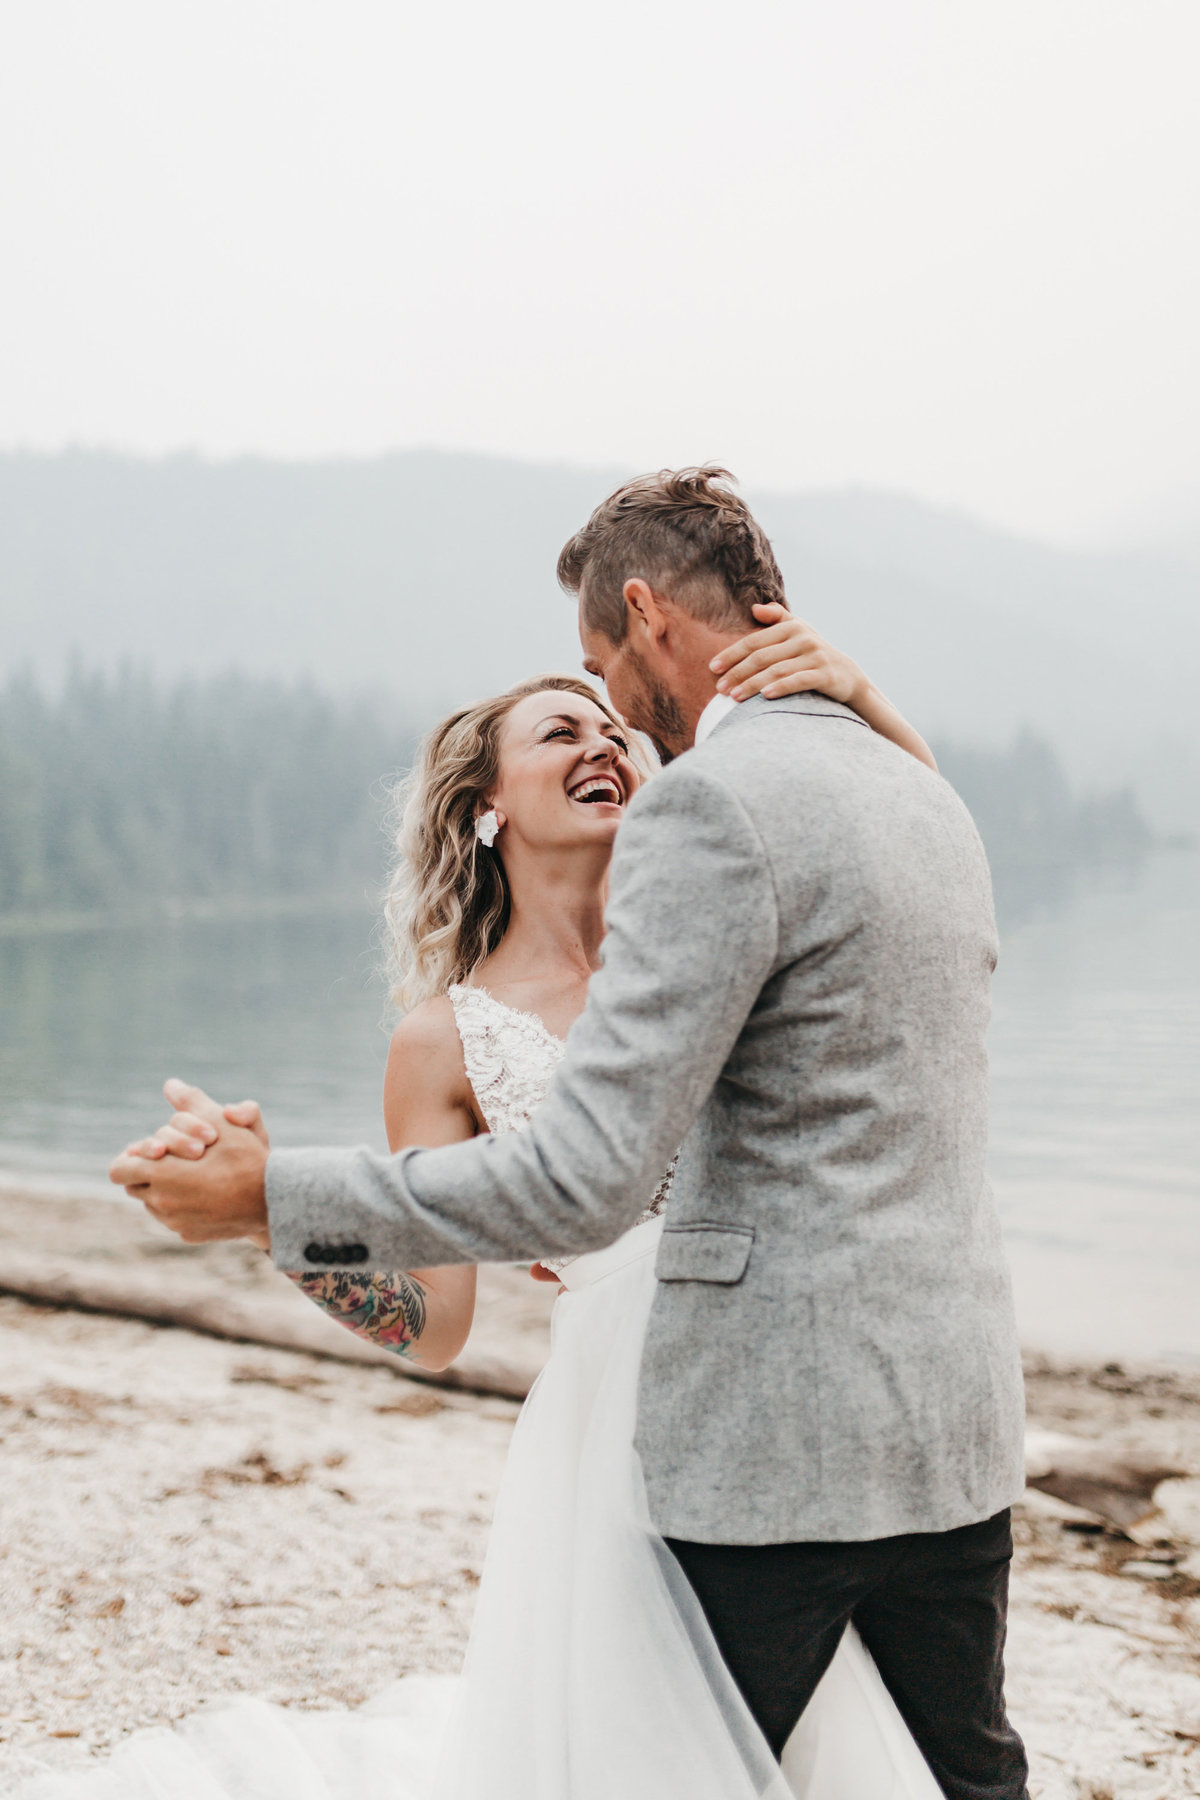 athena-and-camron-sara-truvelle-bridal-wenatchee-elopement-intimate-11-laugh-first-dance